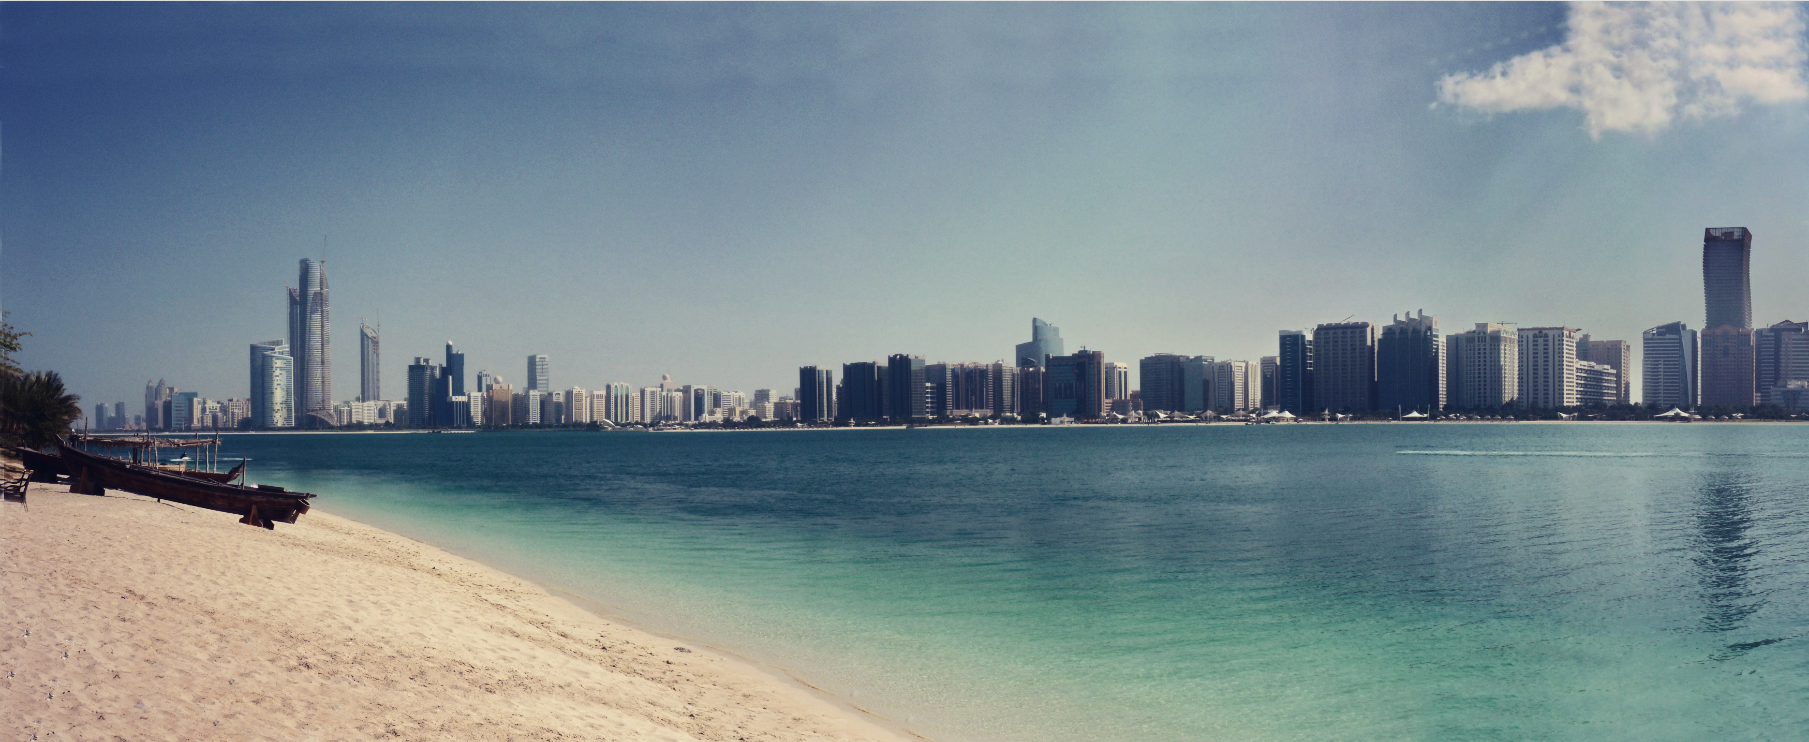 Panoramic_view_from_Marina_Village_-_Abu_Dhabi